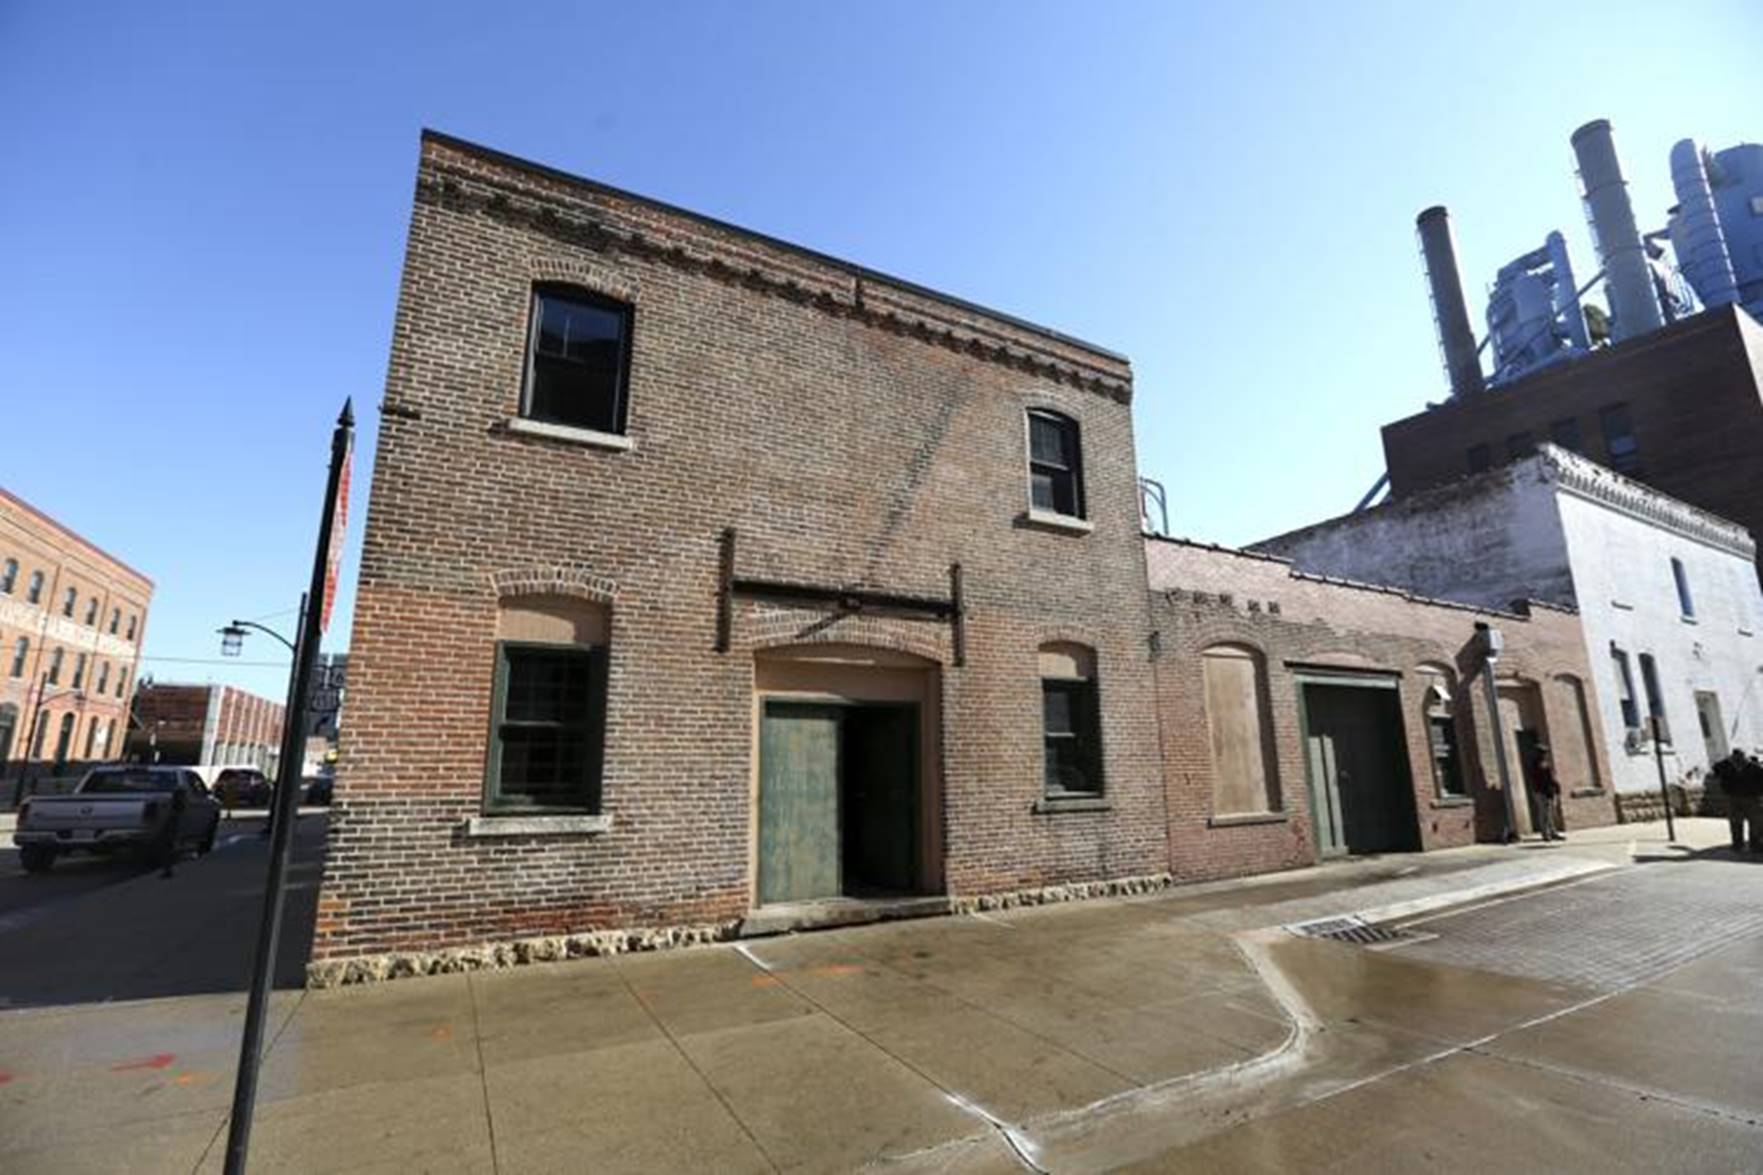 Platteville firm to bring new life to old ironworks building in Dubuque